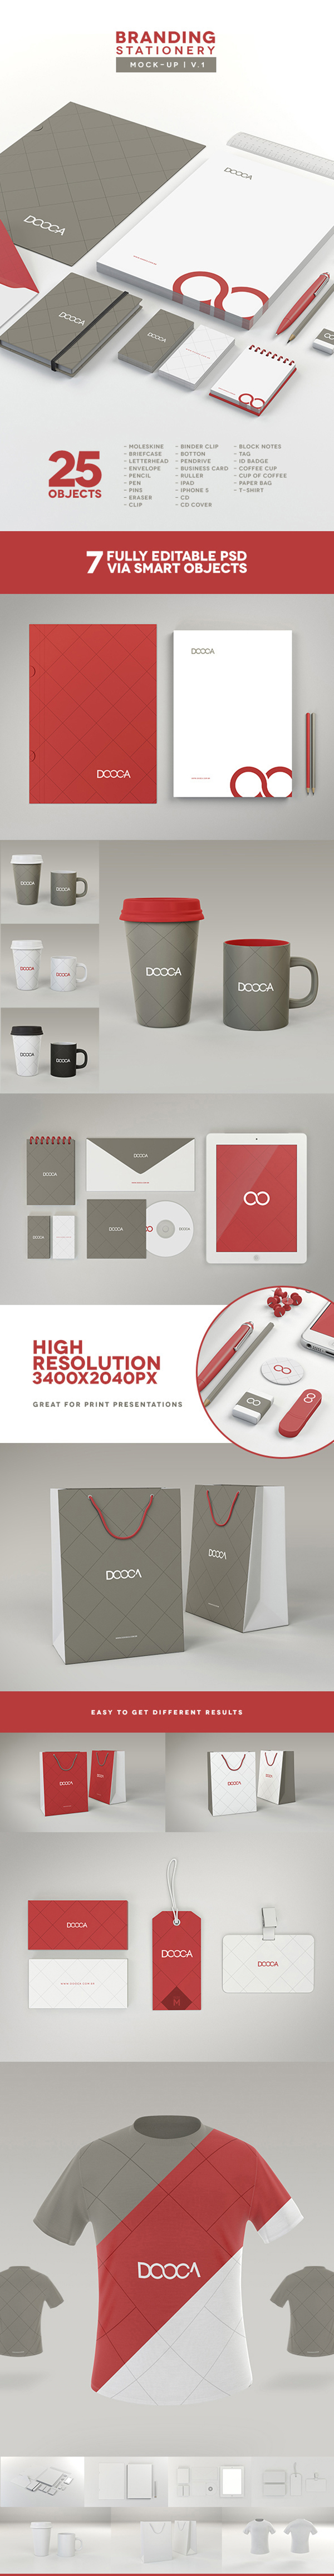 08 Branding : Stationery Mock-up